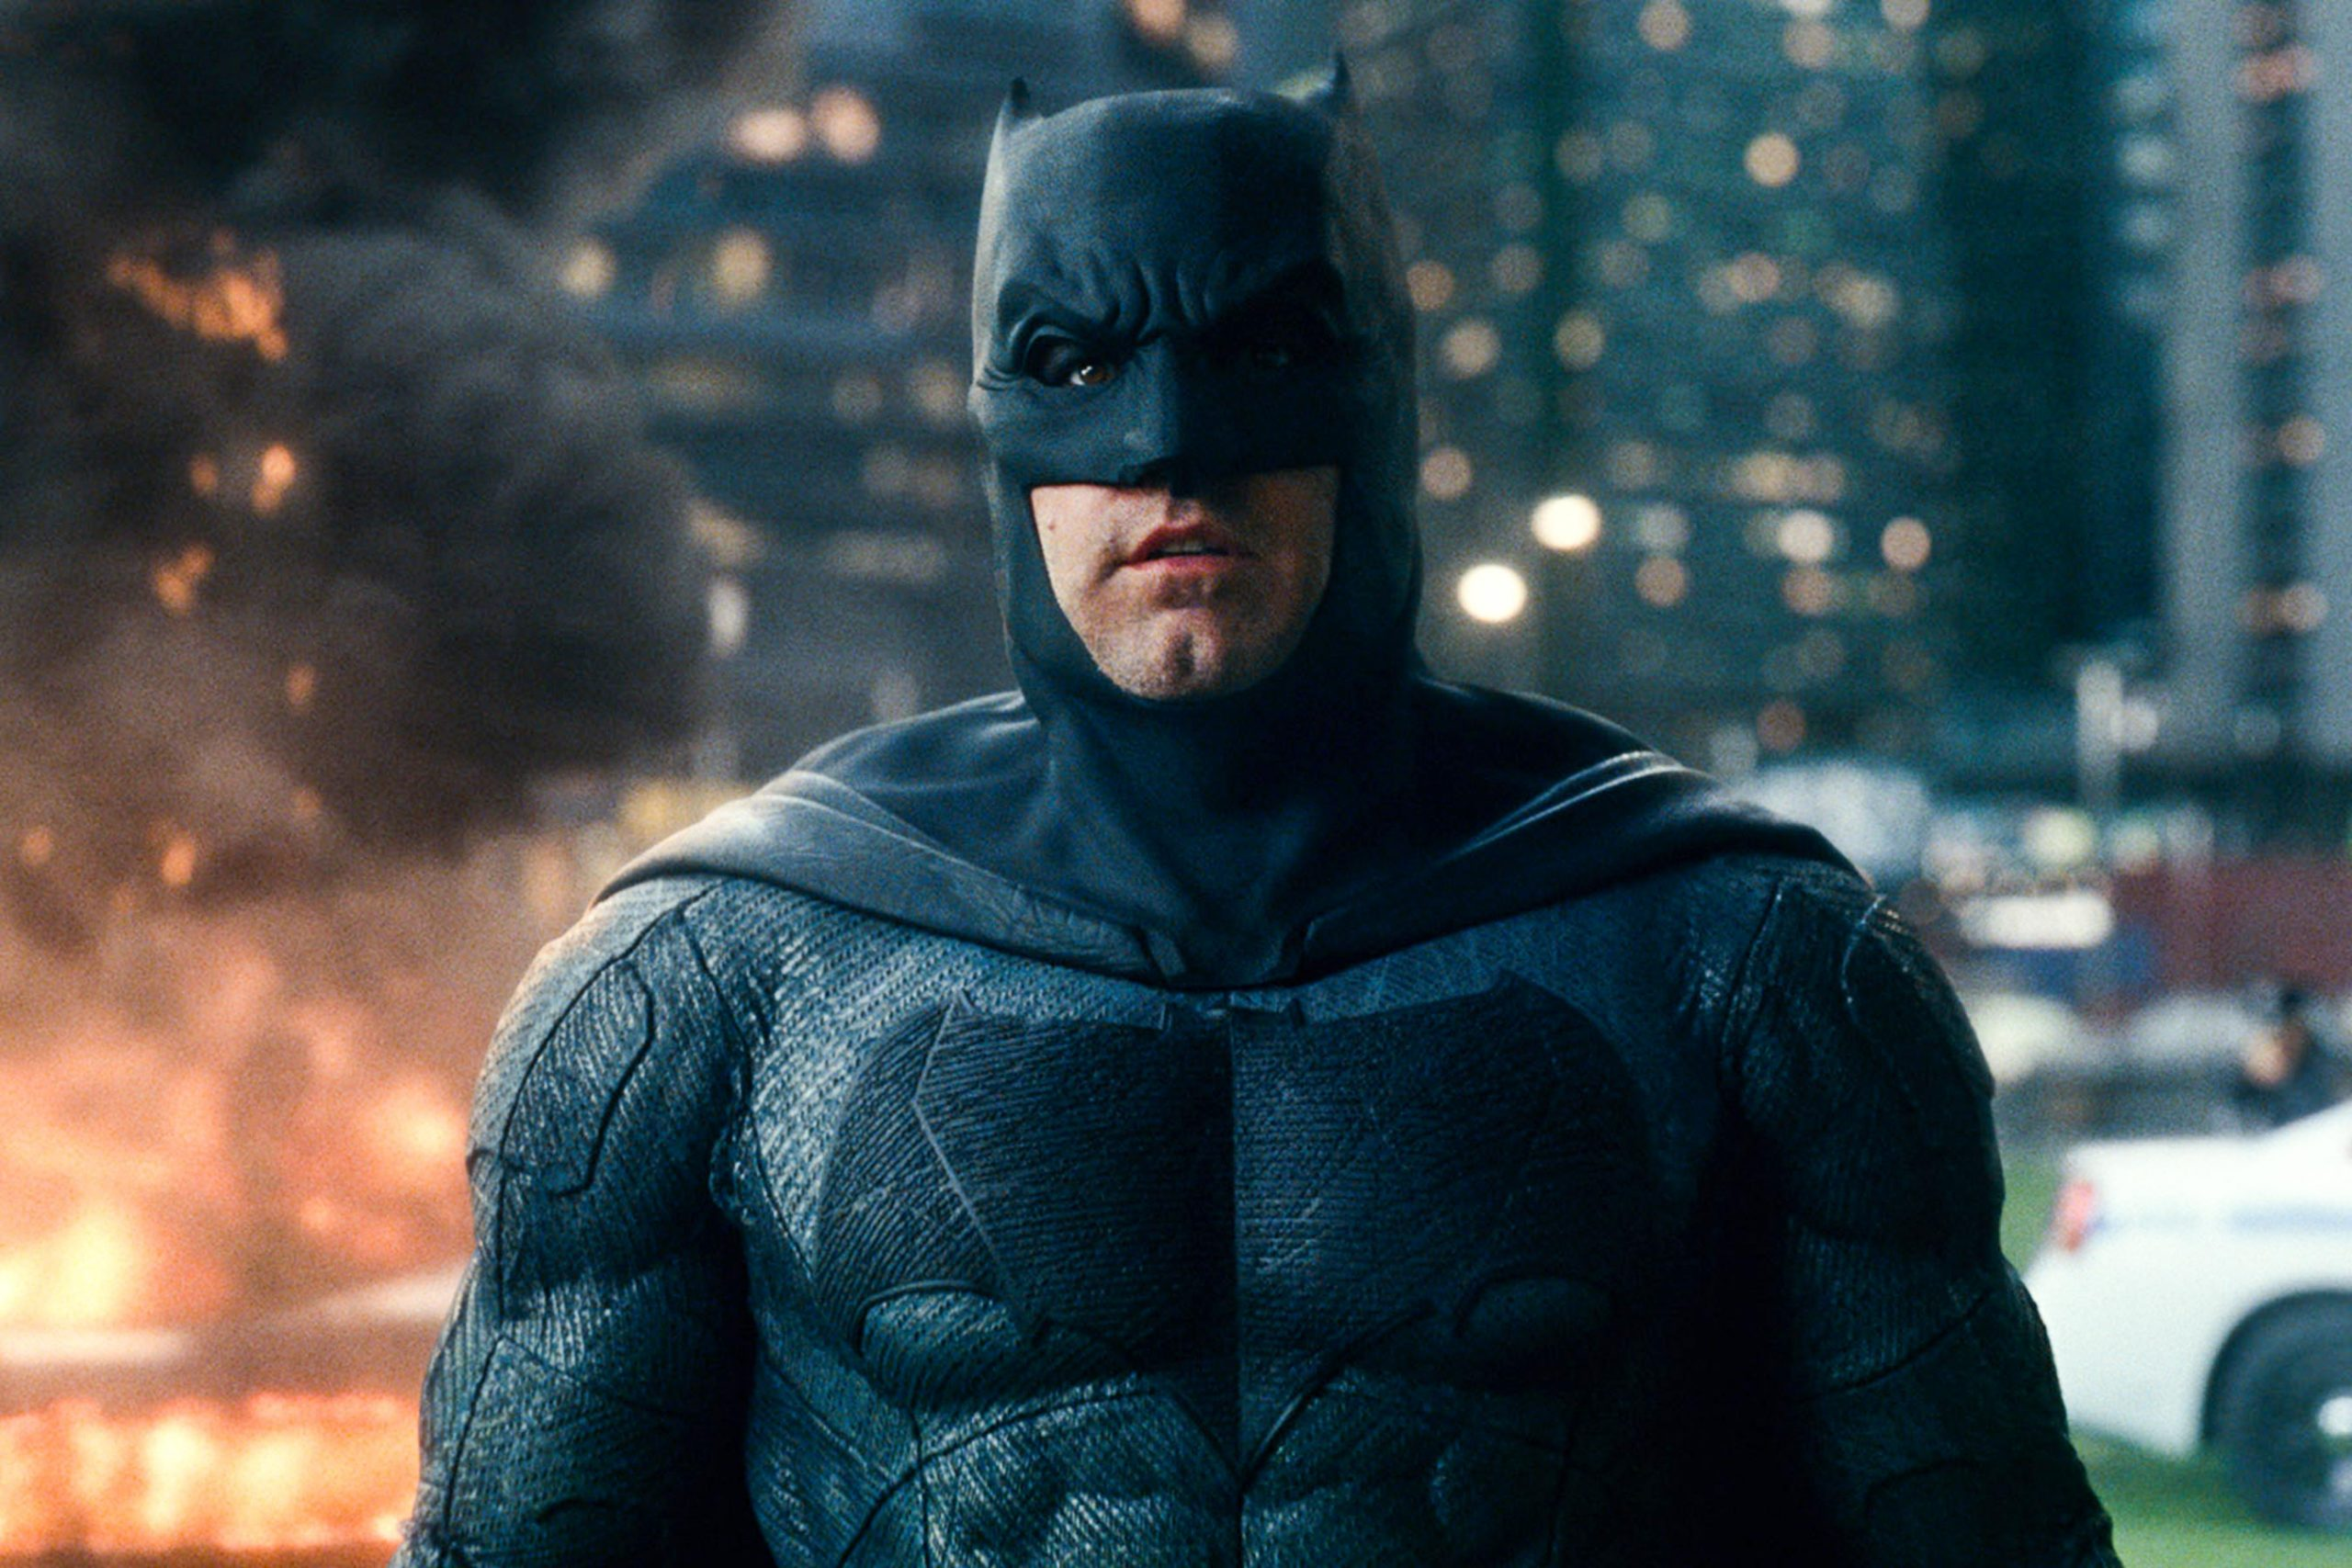 Batman And Other Productions Can Restart Filming In UK